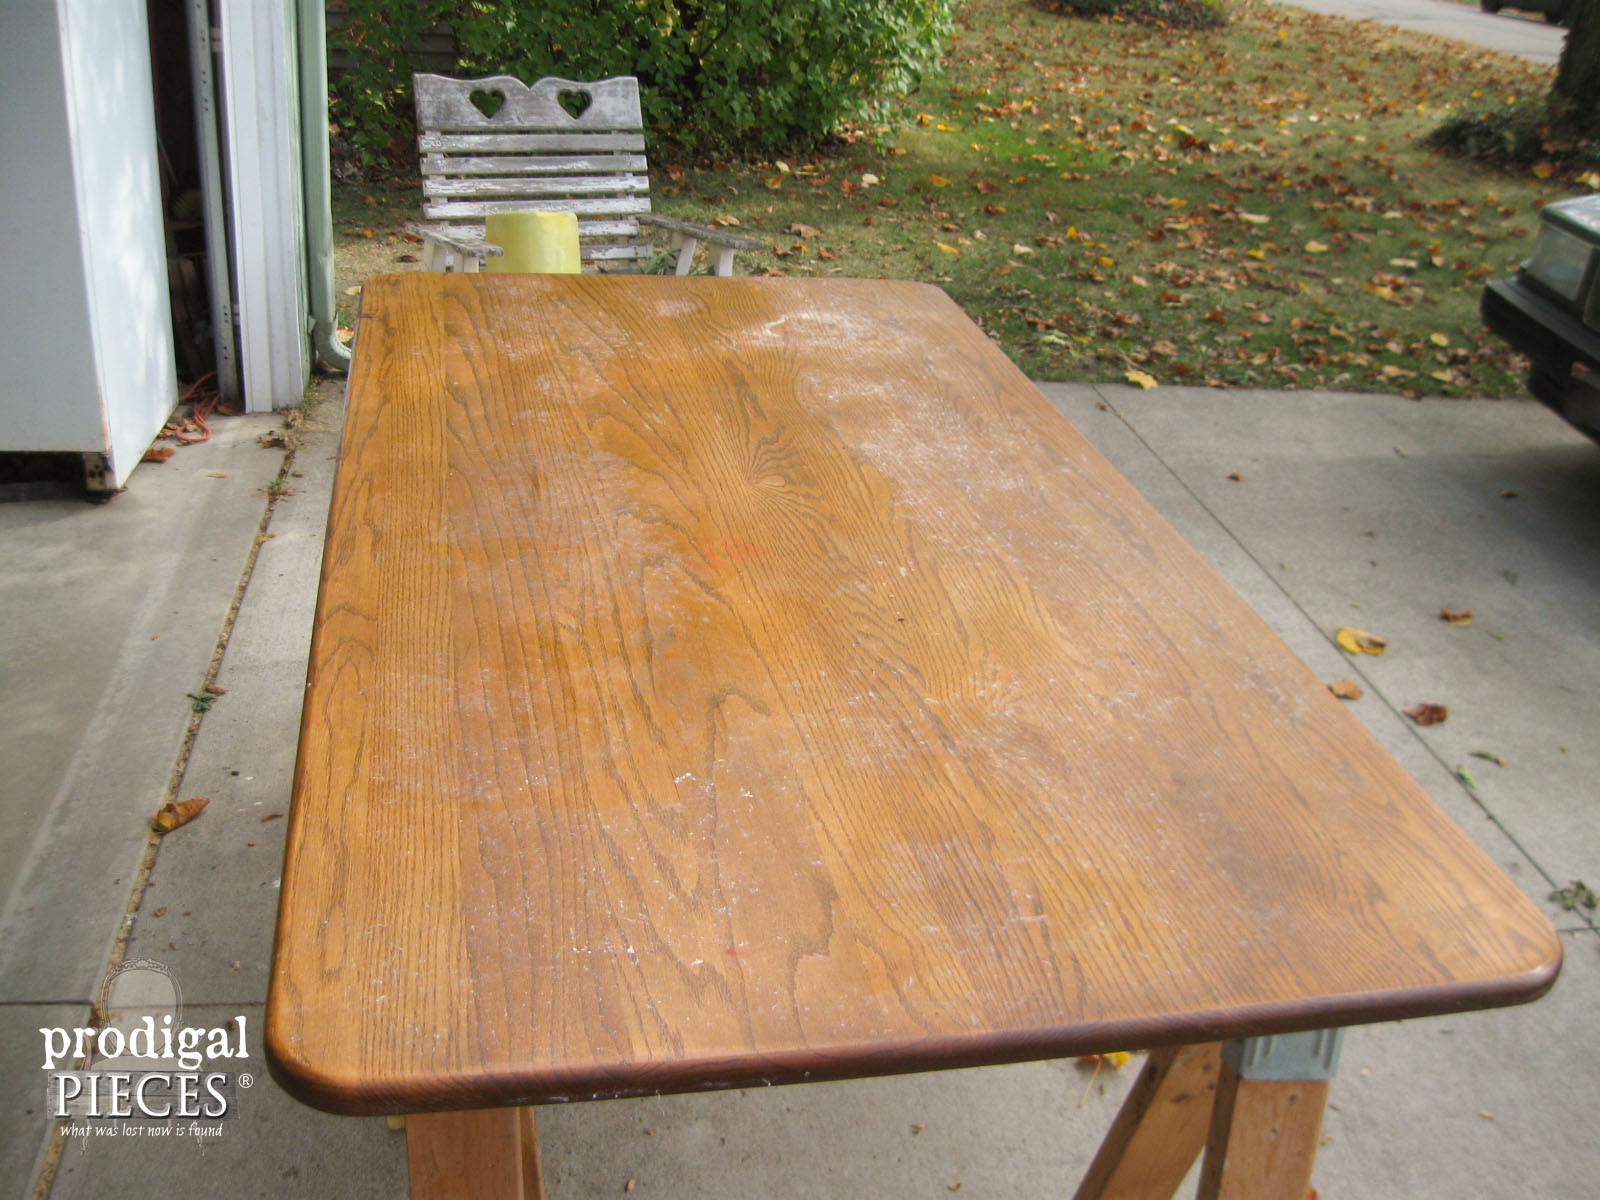 Farmhouse Table Top Being Whitewashed Prodigal Pieces Prodigalpieces Com